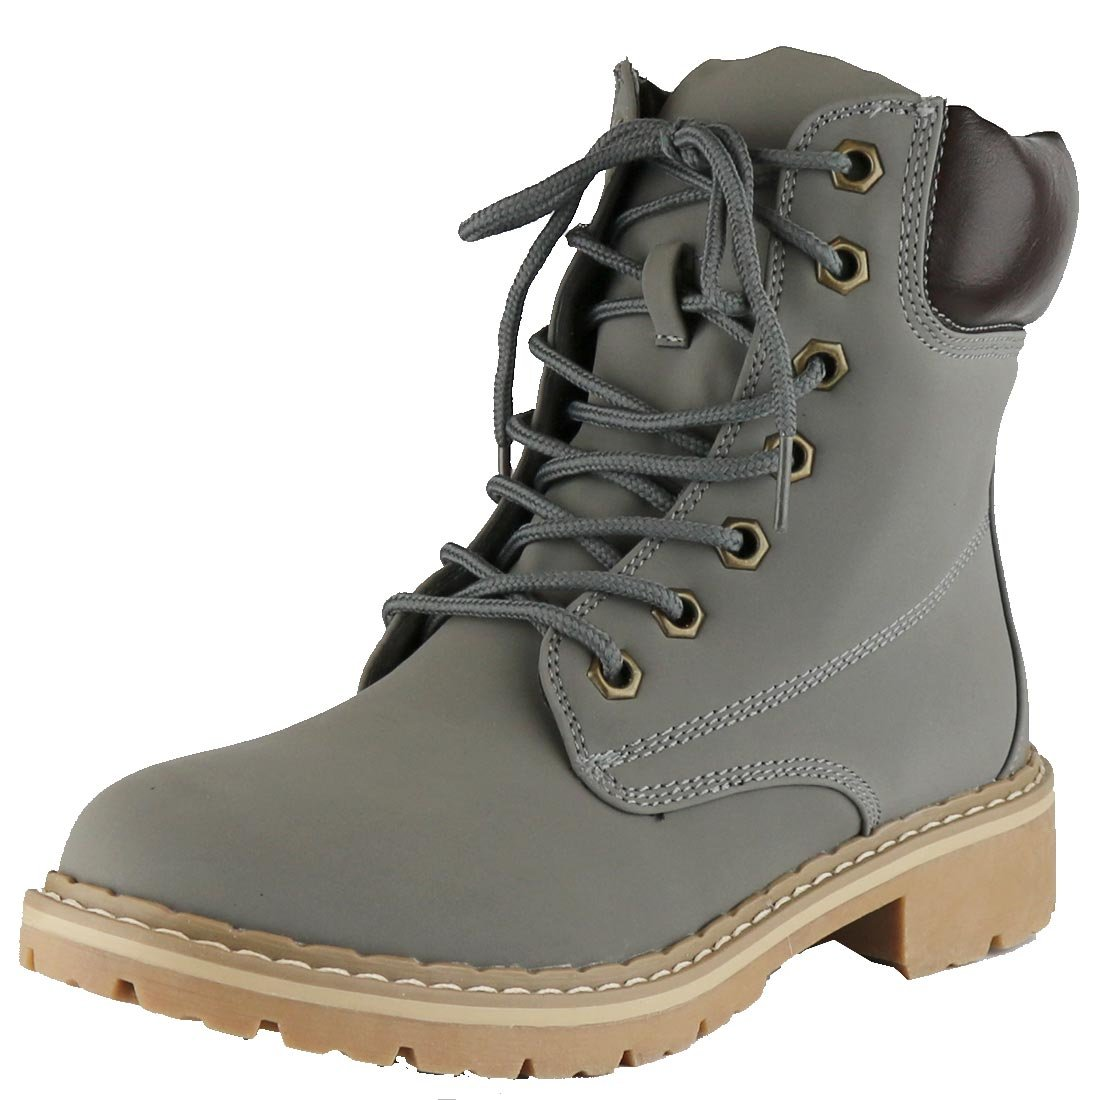 Cambridge Select Women's Work Combat Military Mid Calf Lug Sole Boot,7.5 B(M) US,Grey